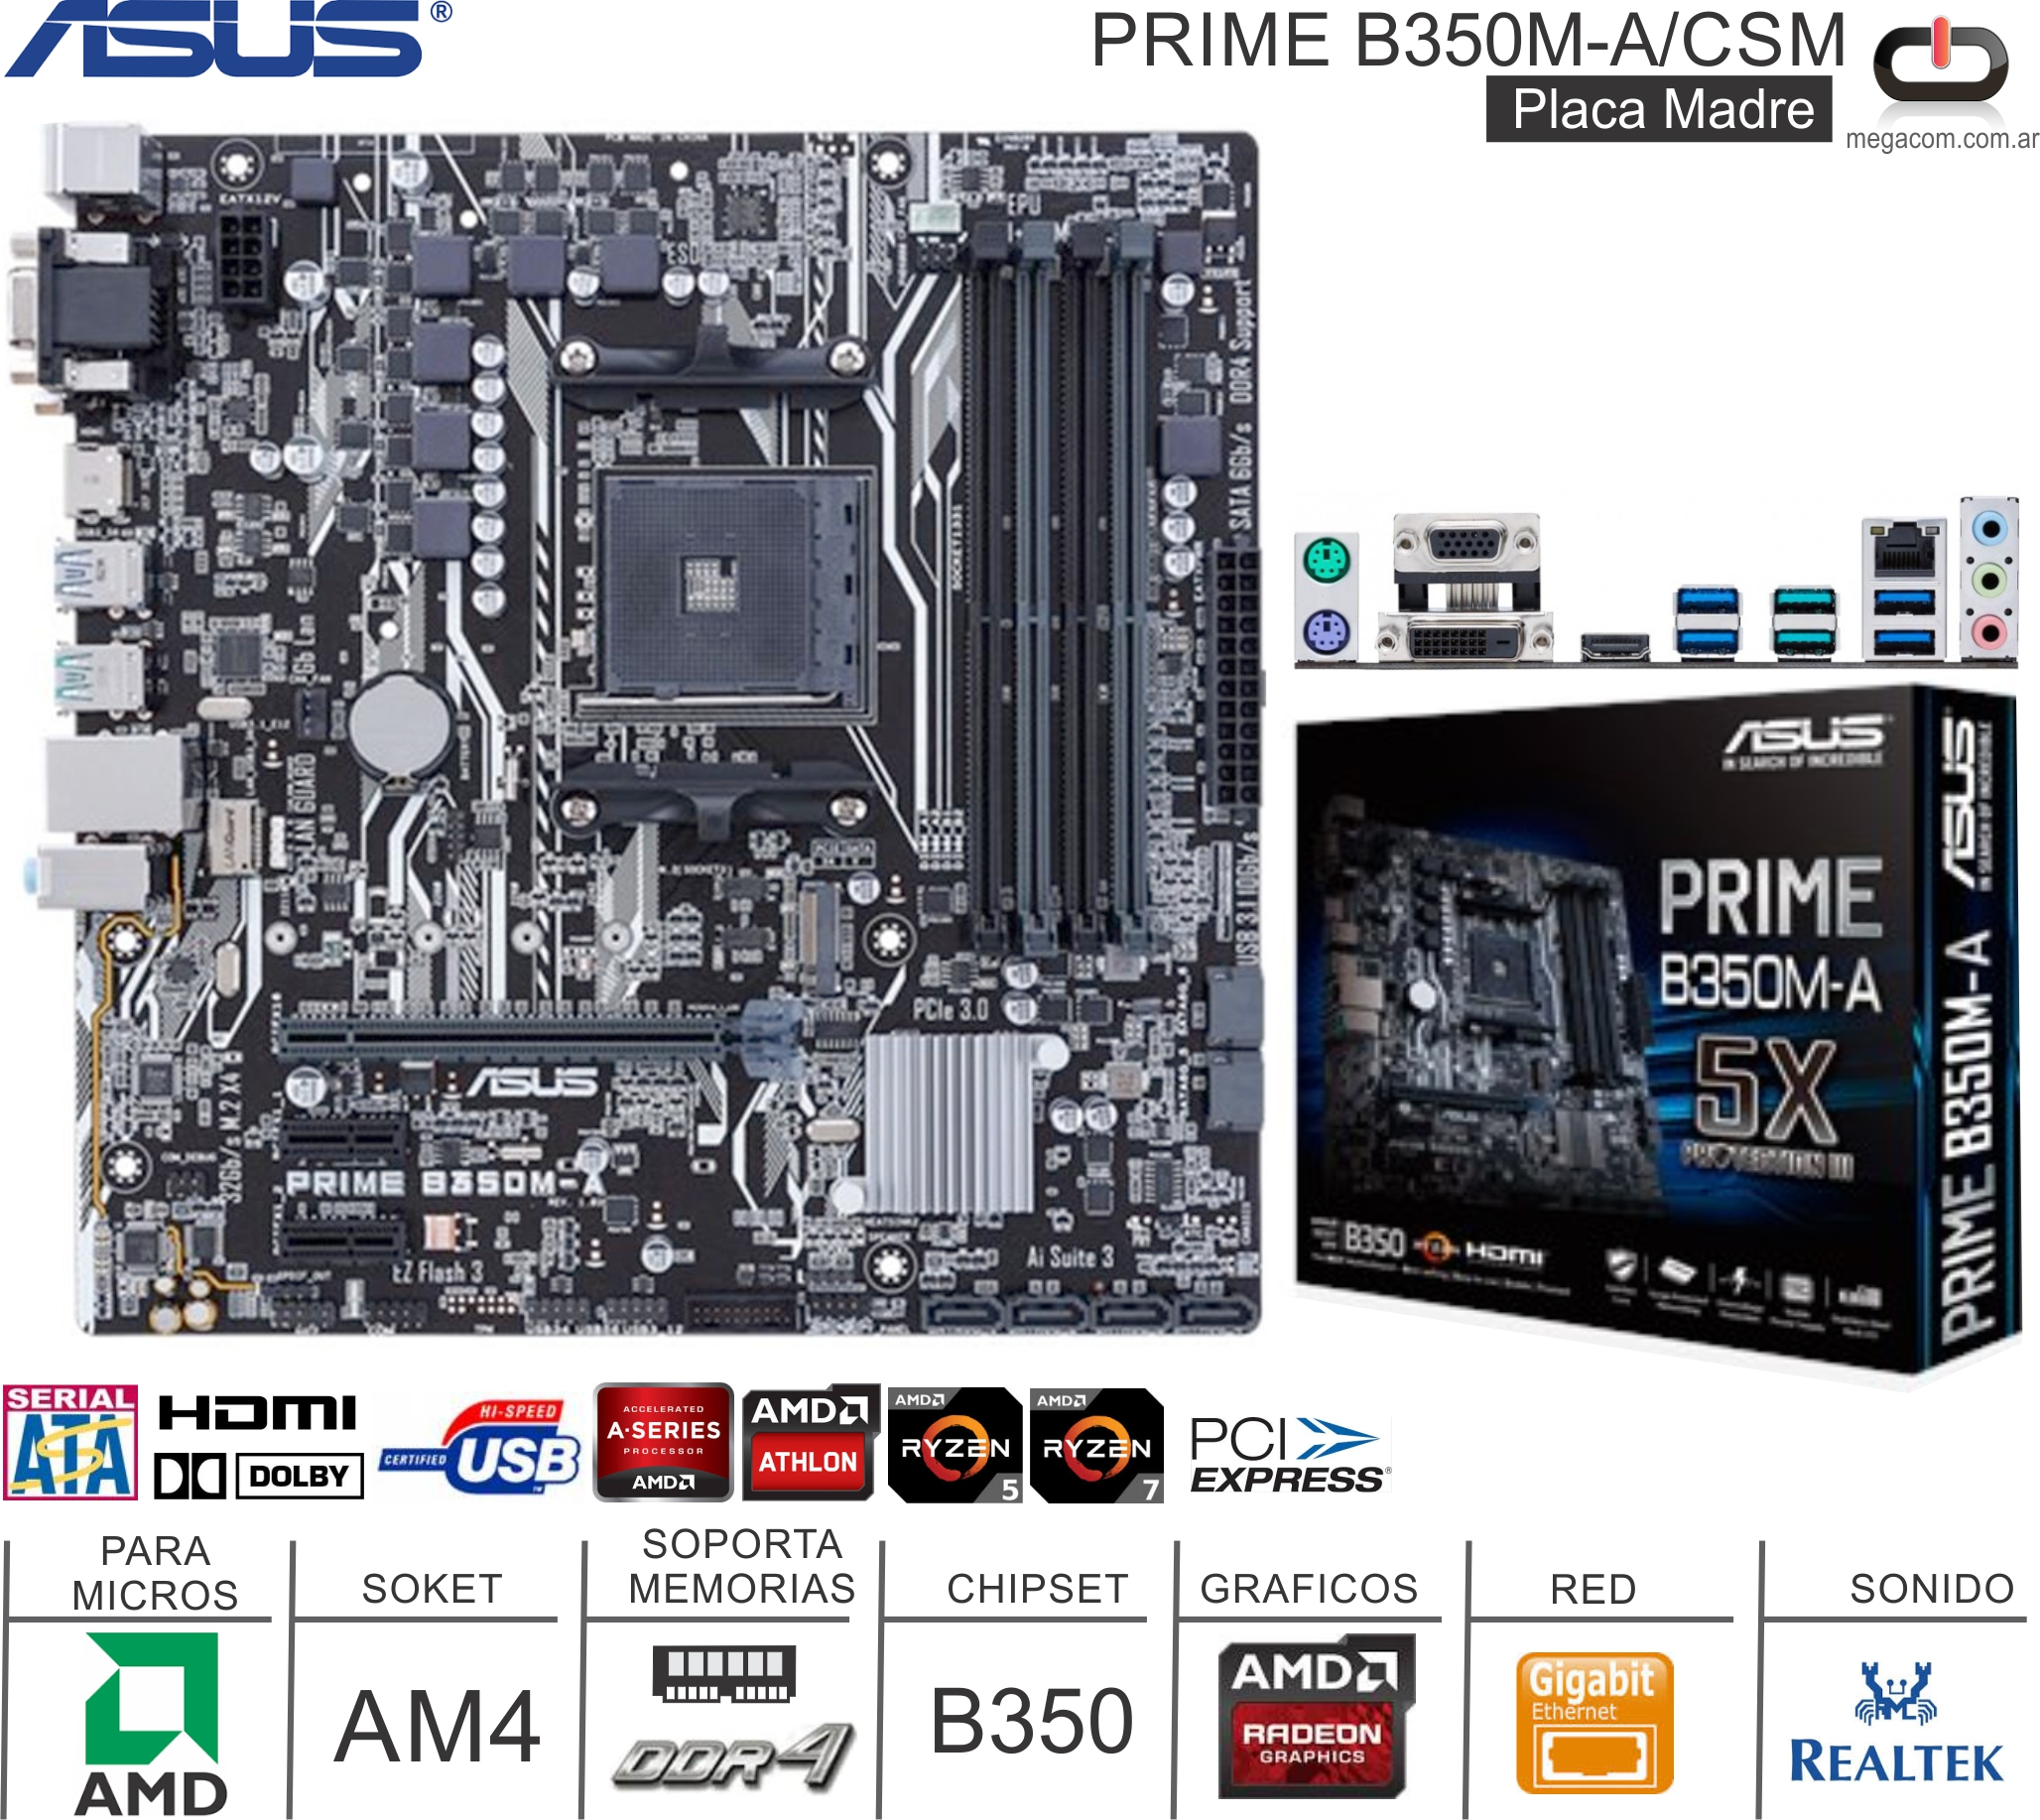 Mother AMD AM4 ASUS PRIME B350M-A/CSM